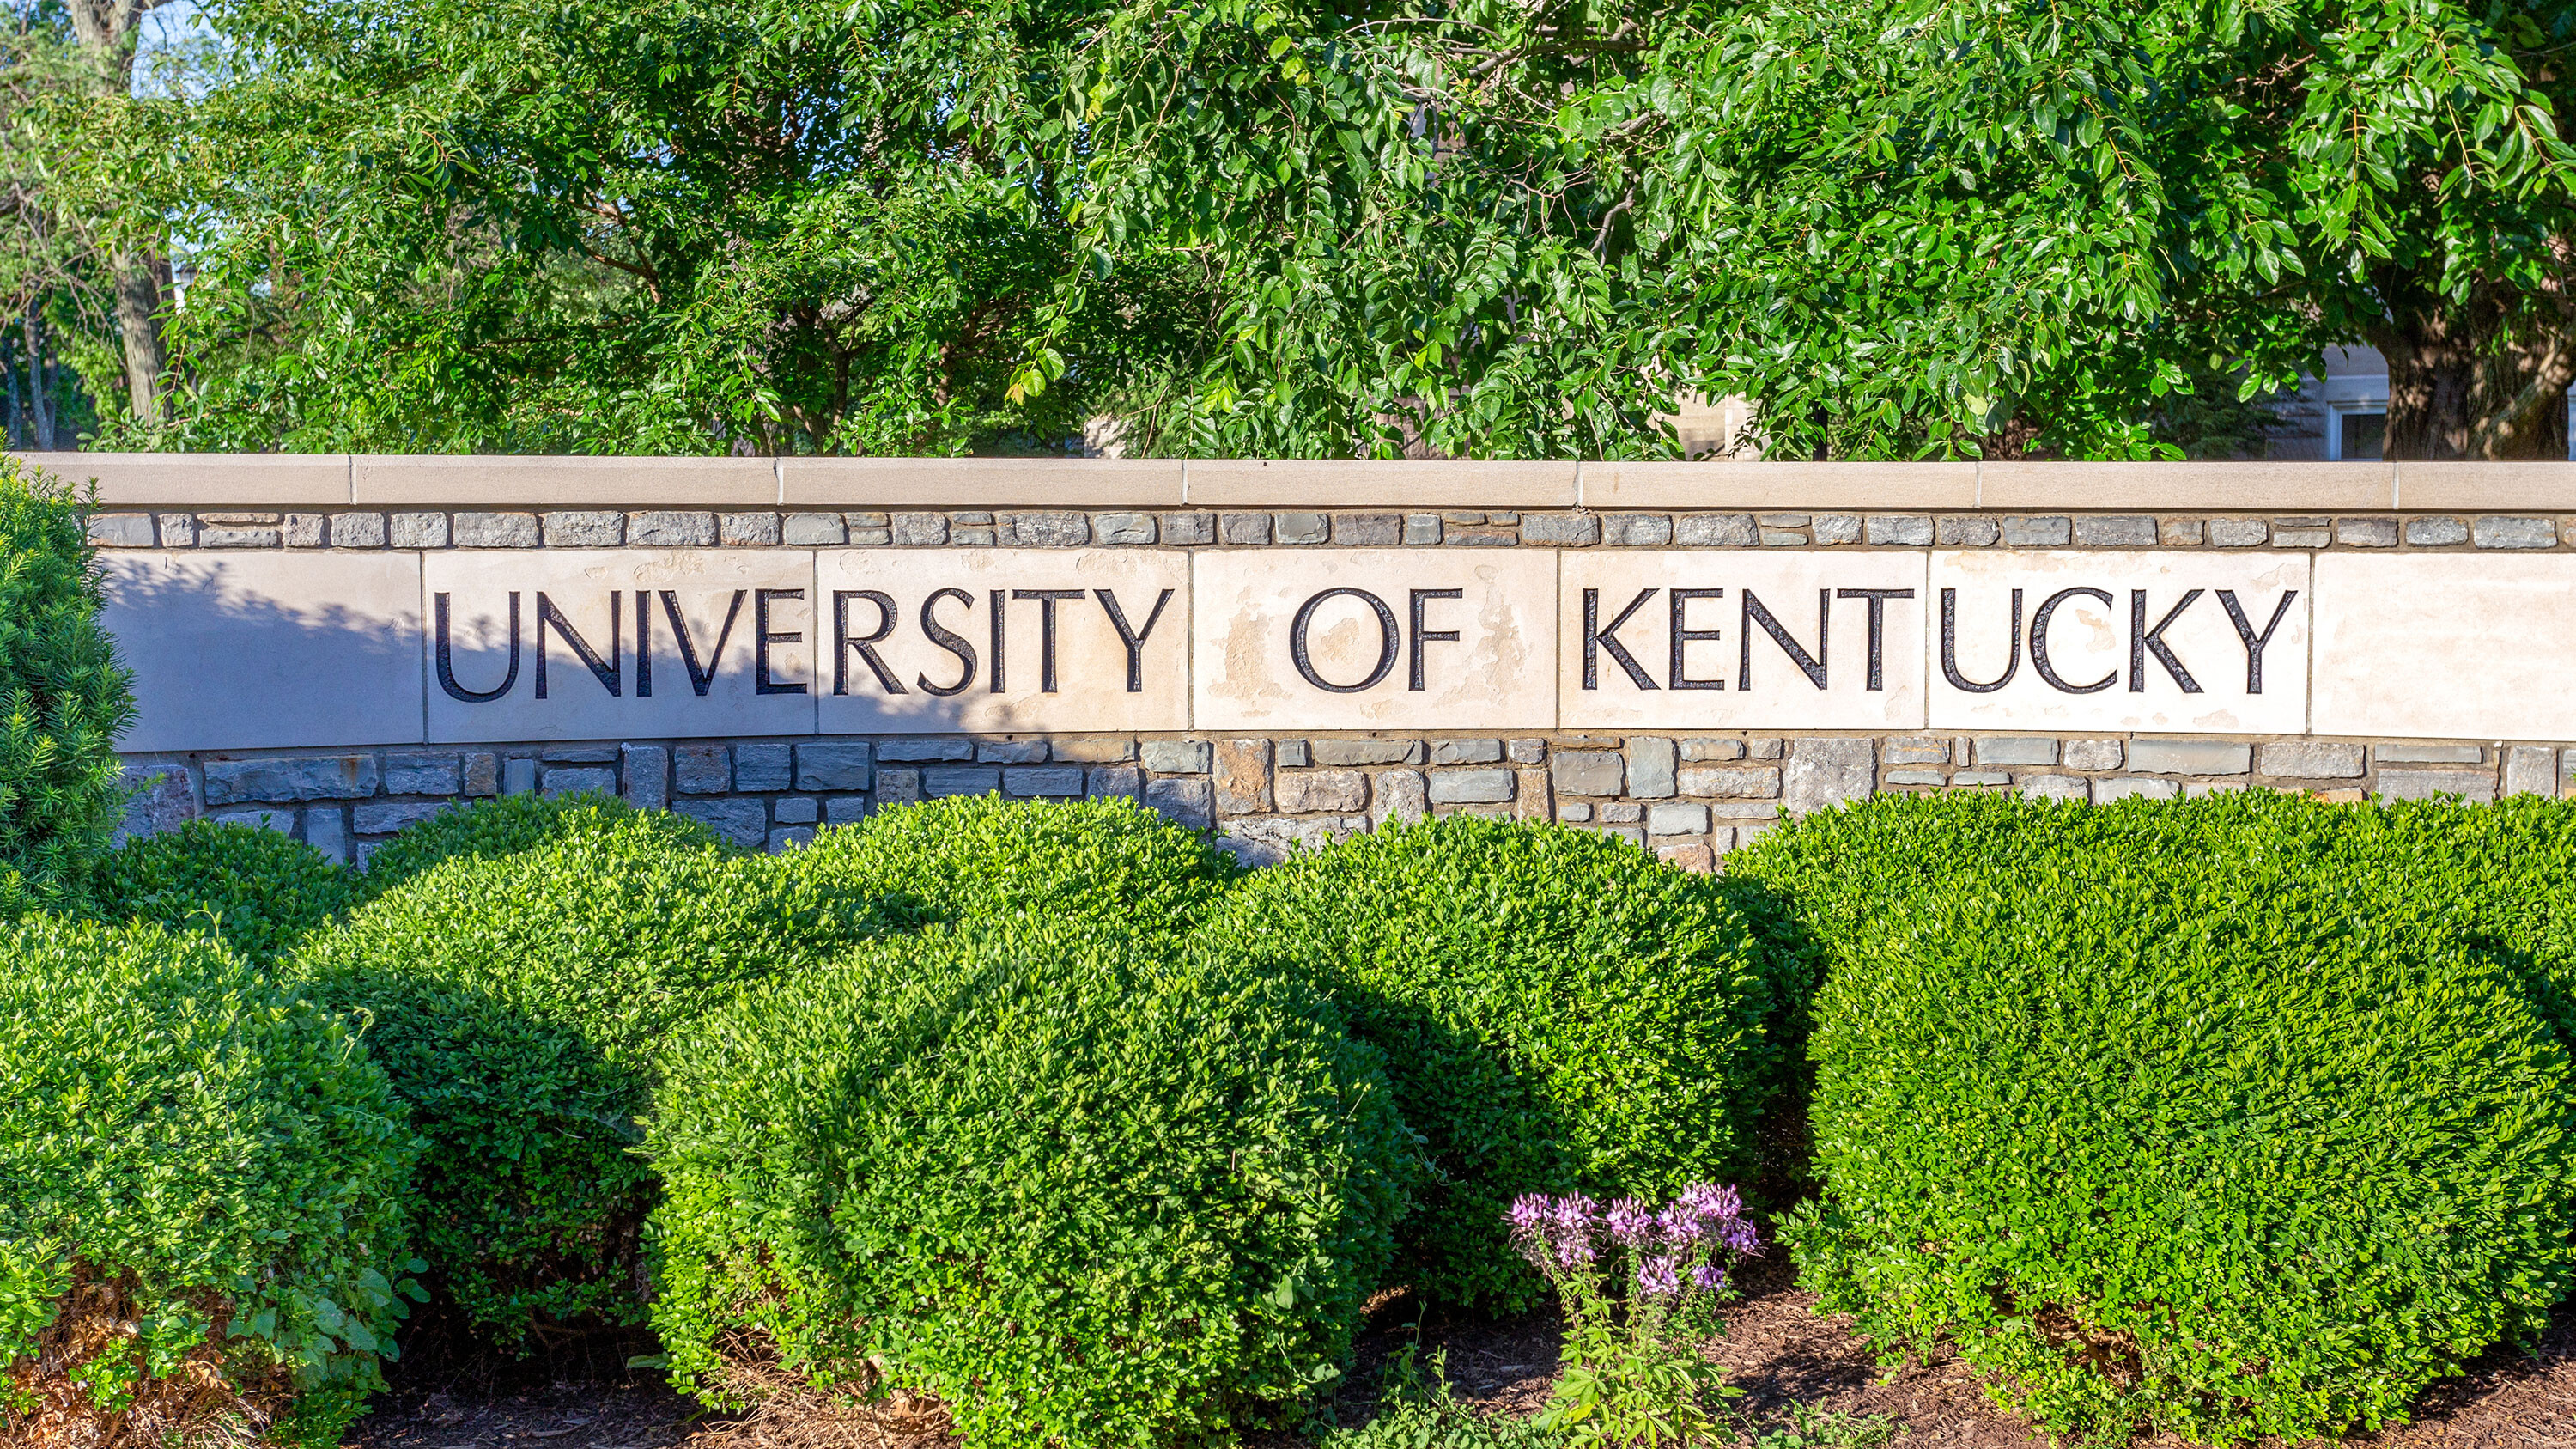 University of Kentucky student dies after being found unresponsive at fraternity, university police say